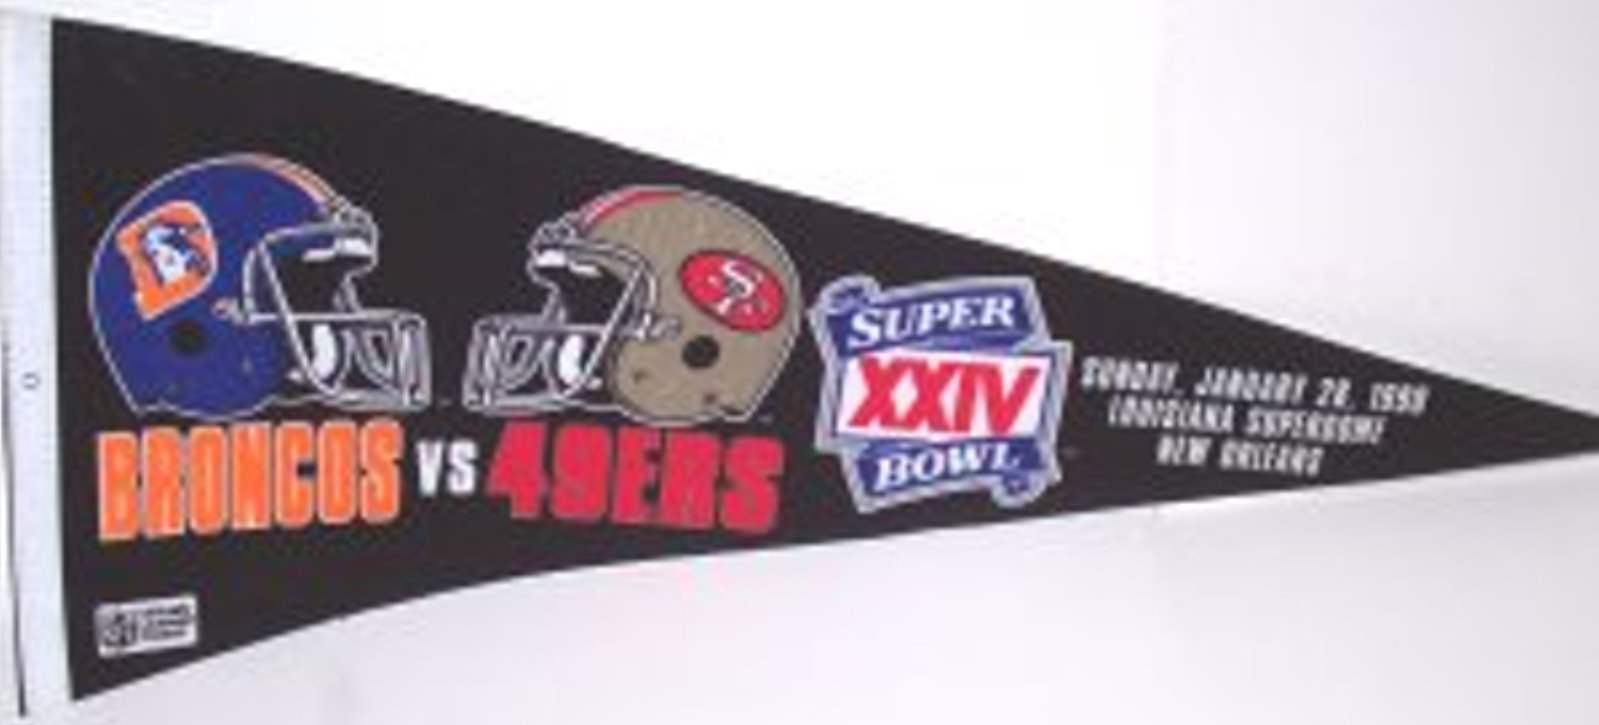 Super Bowl XXIV San Francisco 49ers vs Denver Broncos Pennant